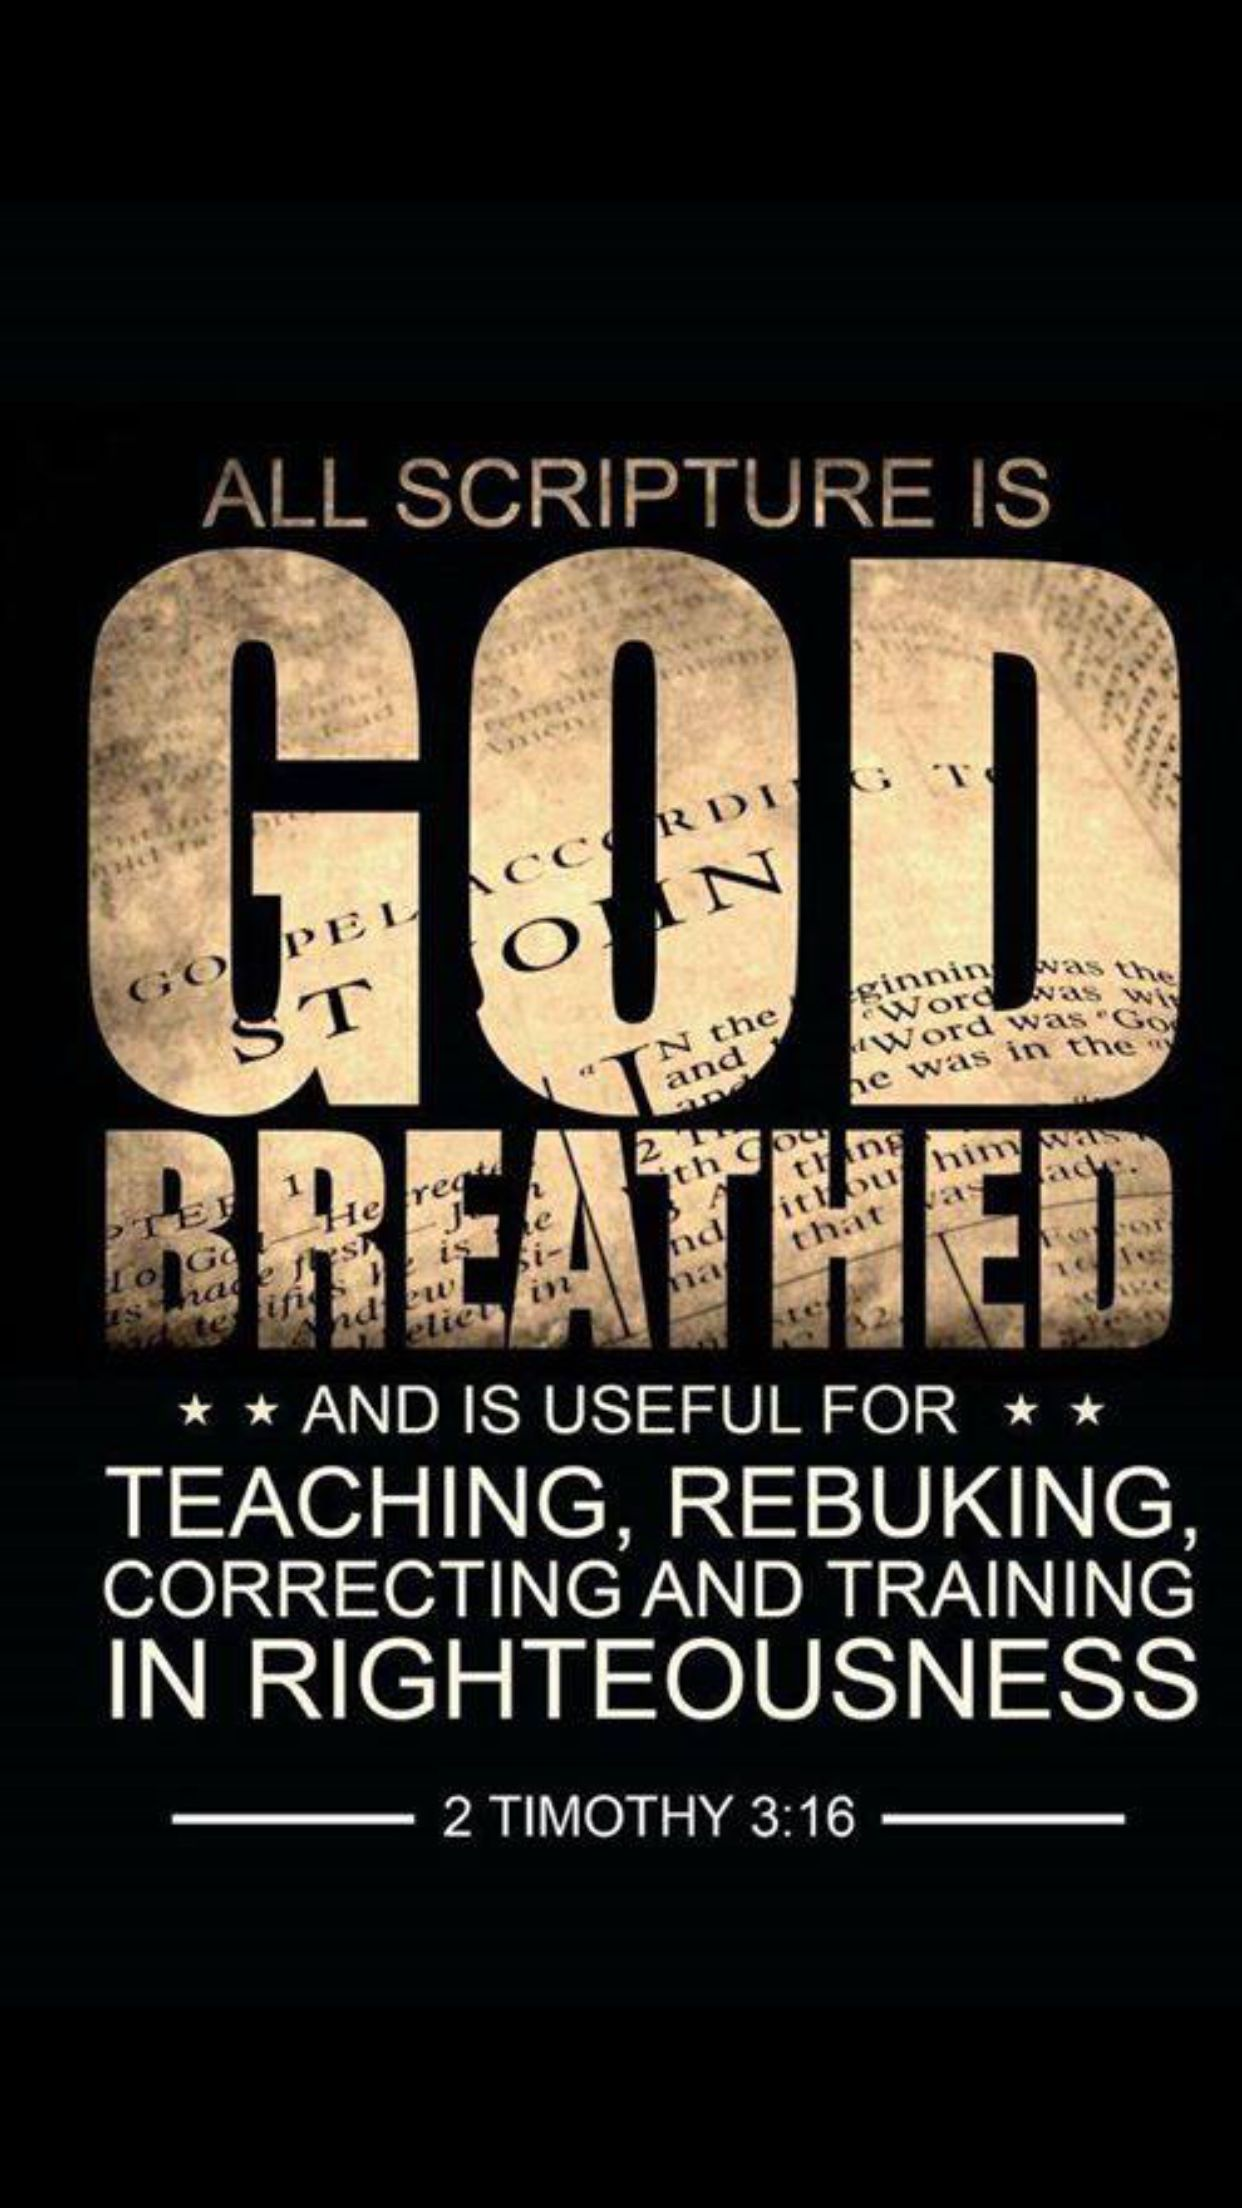 All Scripture is God's breathed and inspired by the Holy